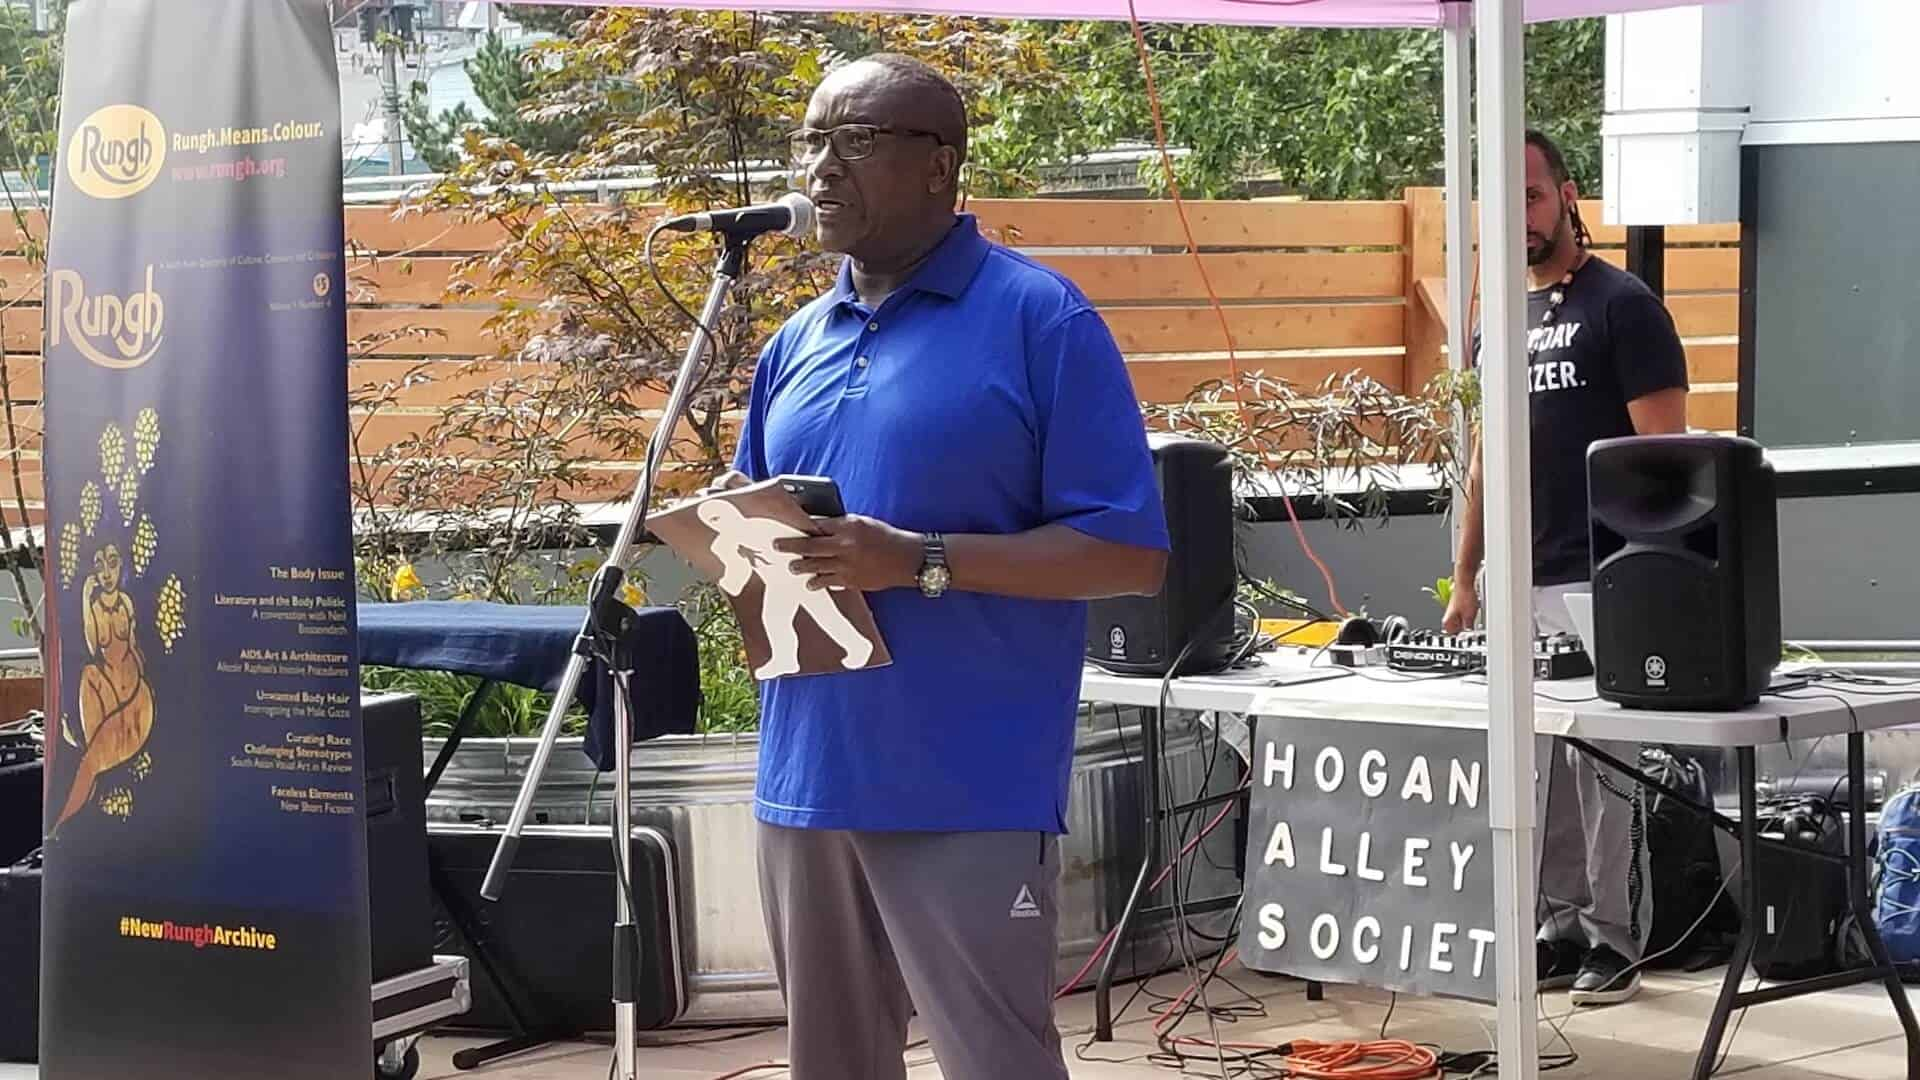 Summer Block Party: Rungh Readings With Hogan's Alley Society 3